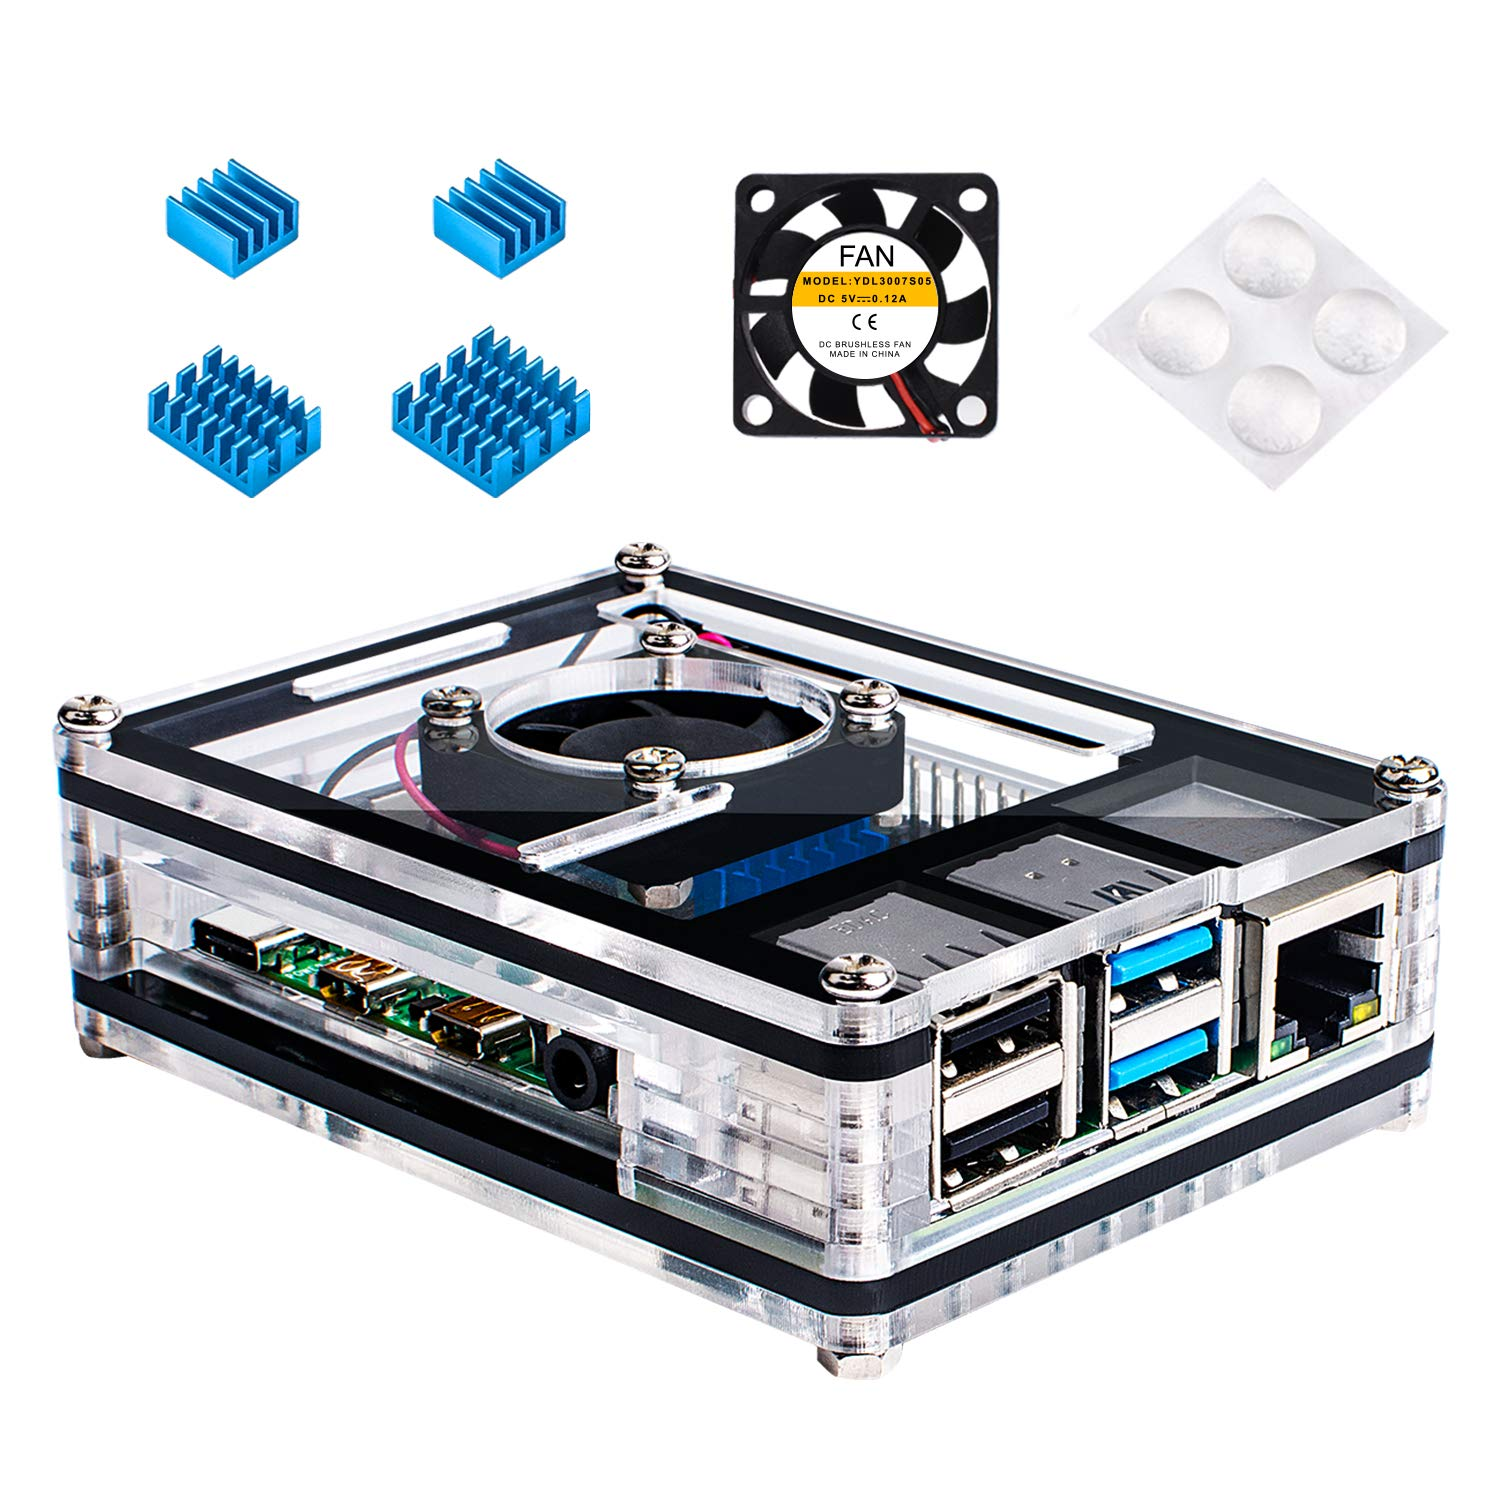 Miuzei Case for Raspberry Pi 4 with Fan, 3 x Heat-Sinks for Raspberry Pi 4 Model B- Black/Clear (Pi 4 Board Not Included)